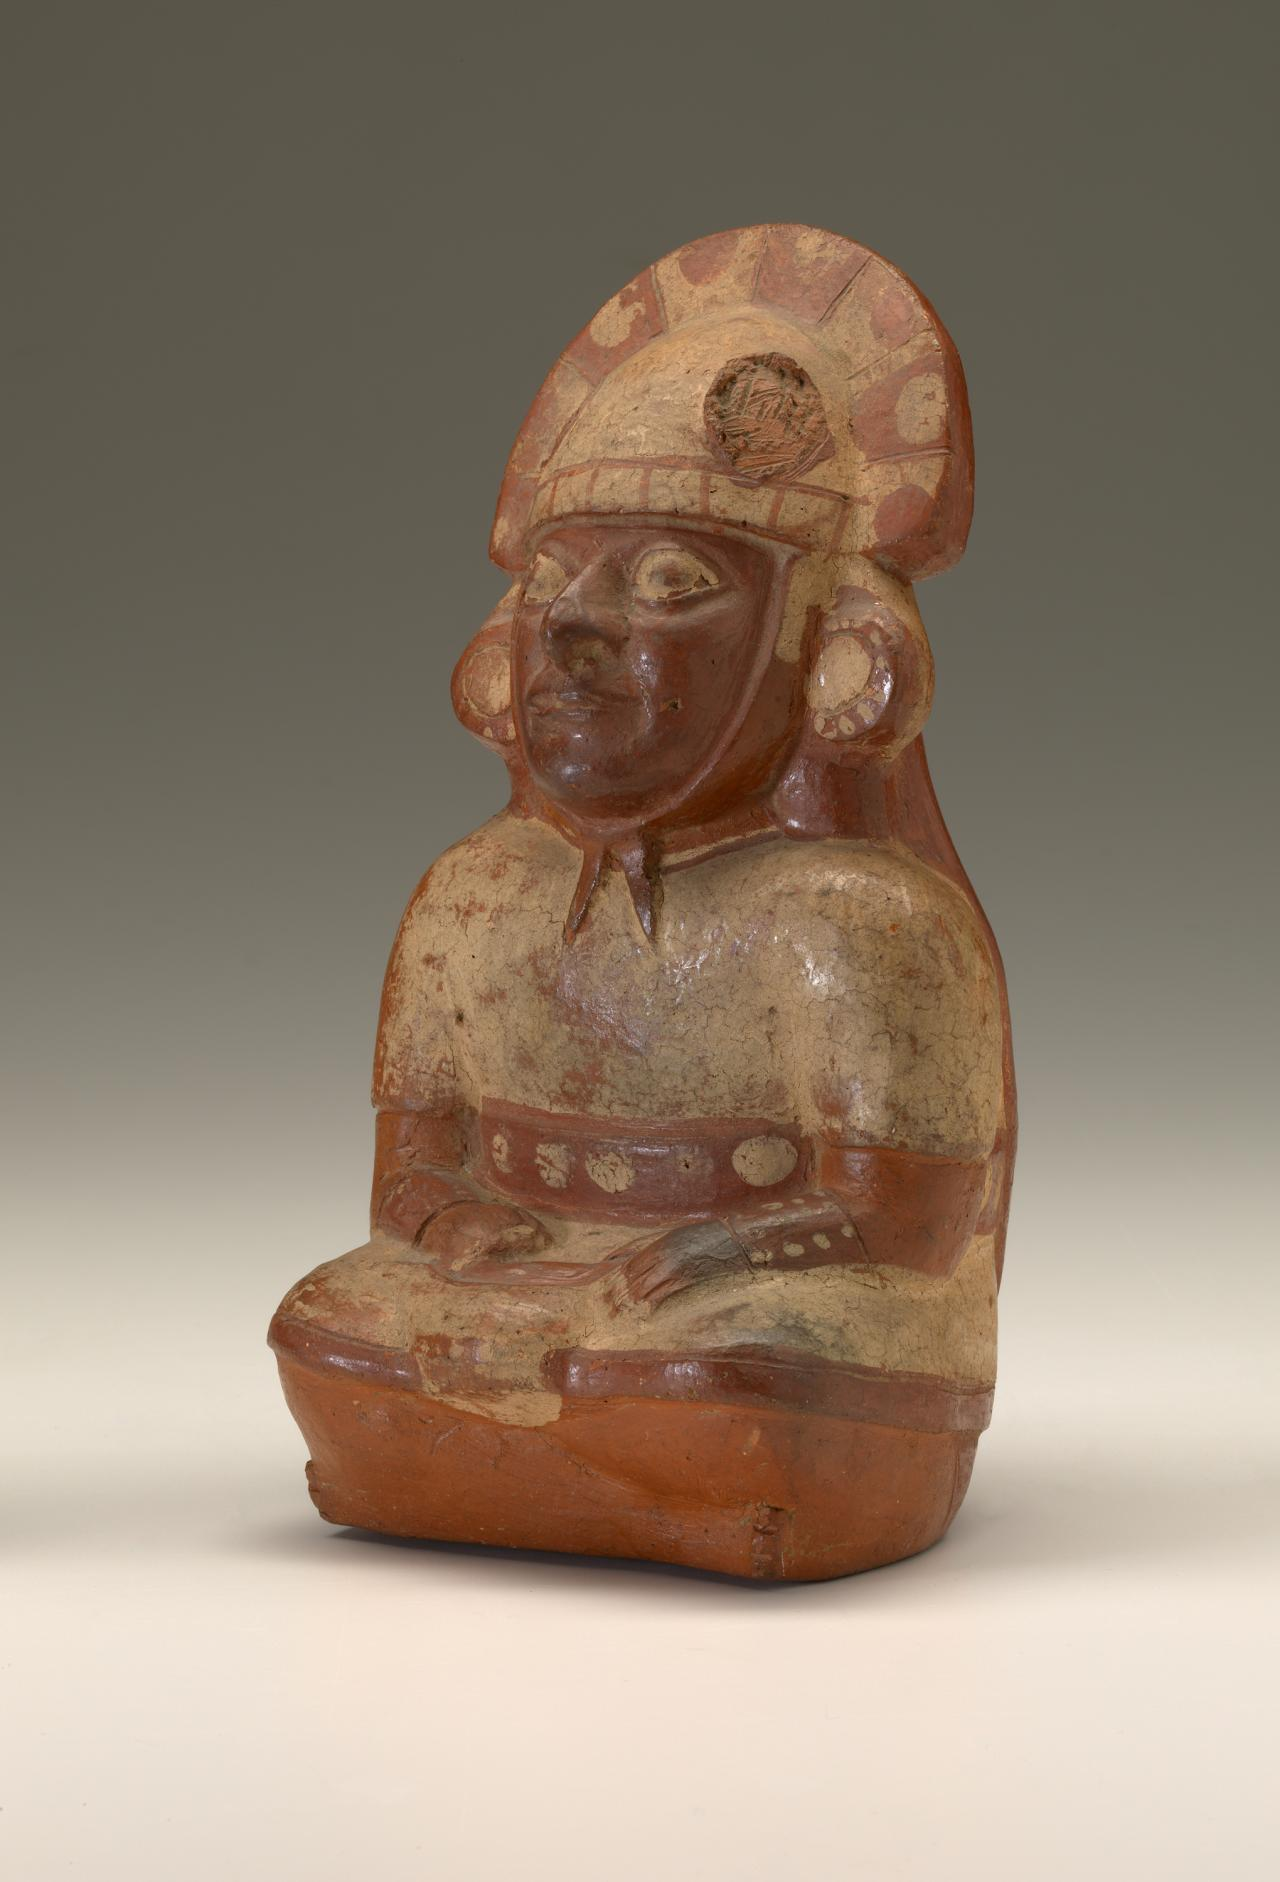 Seated figure, vessel